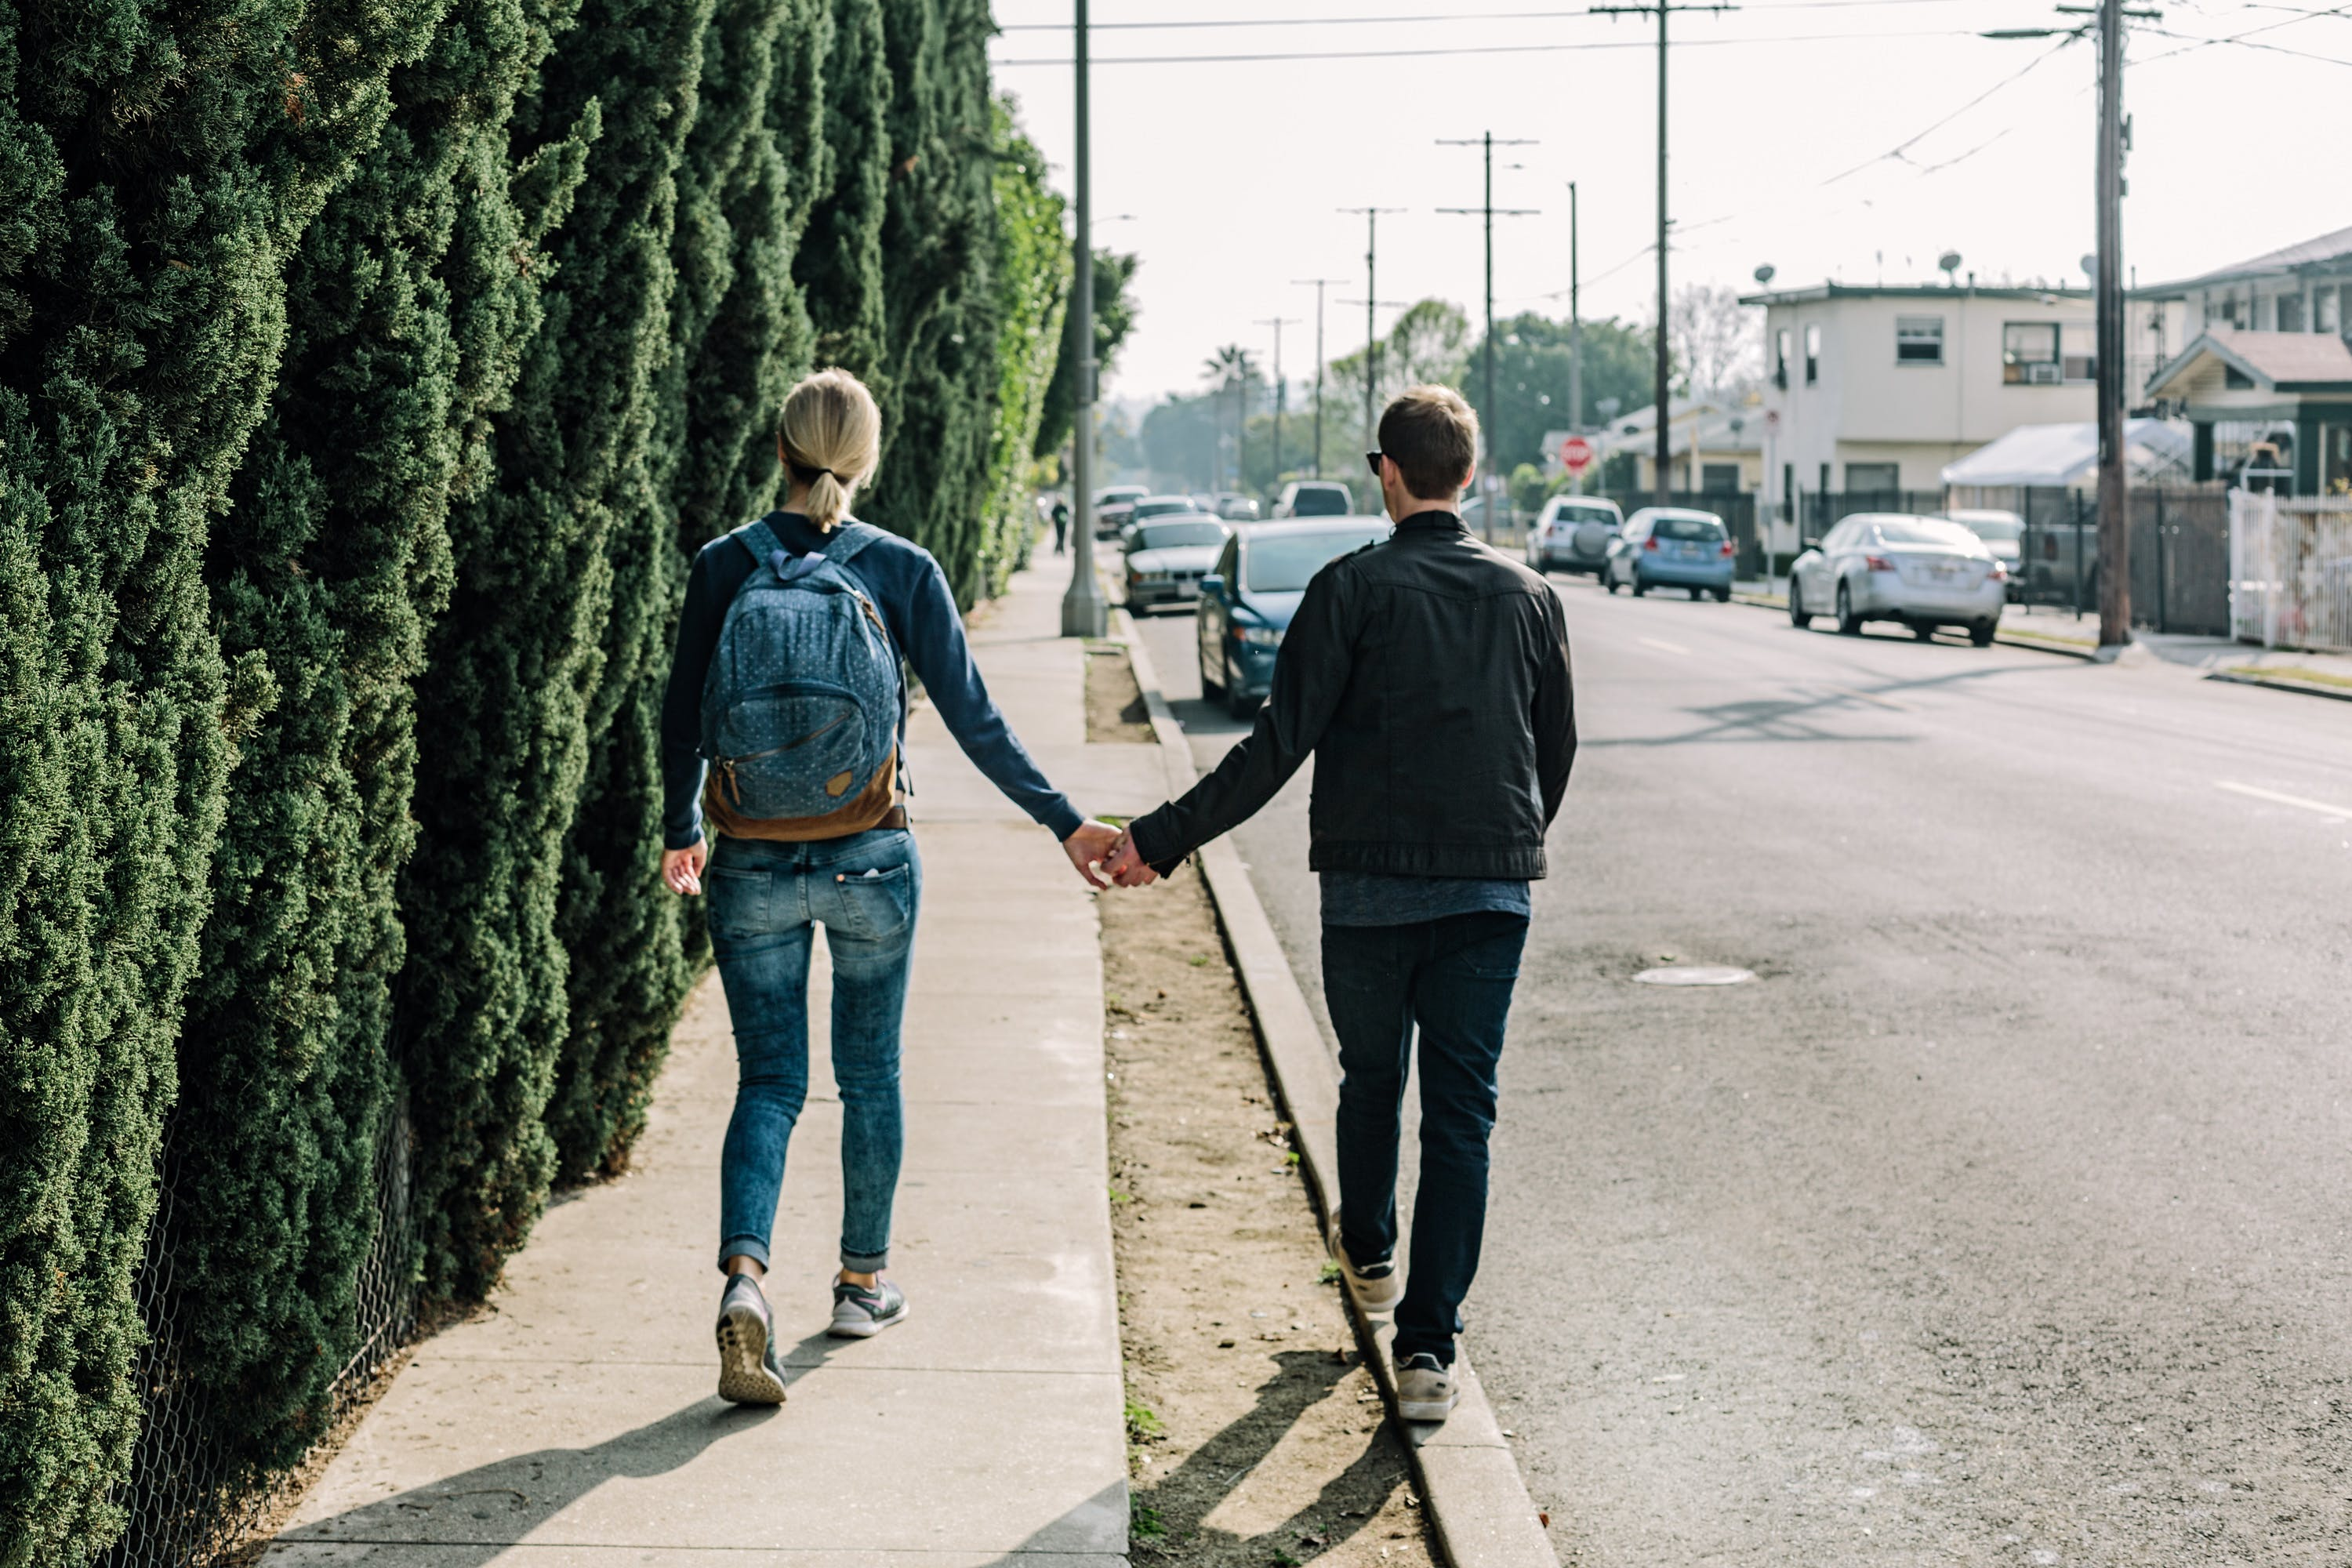 Man Holding Woman While Walking on Sidewalk